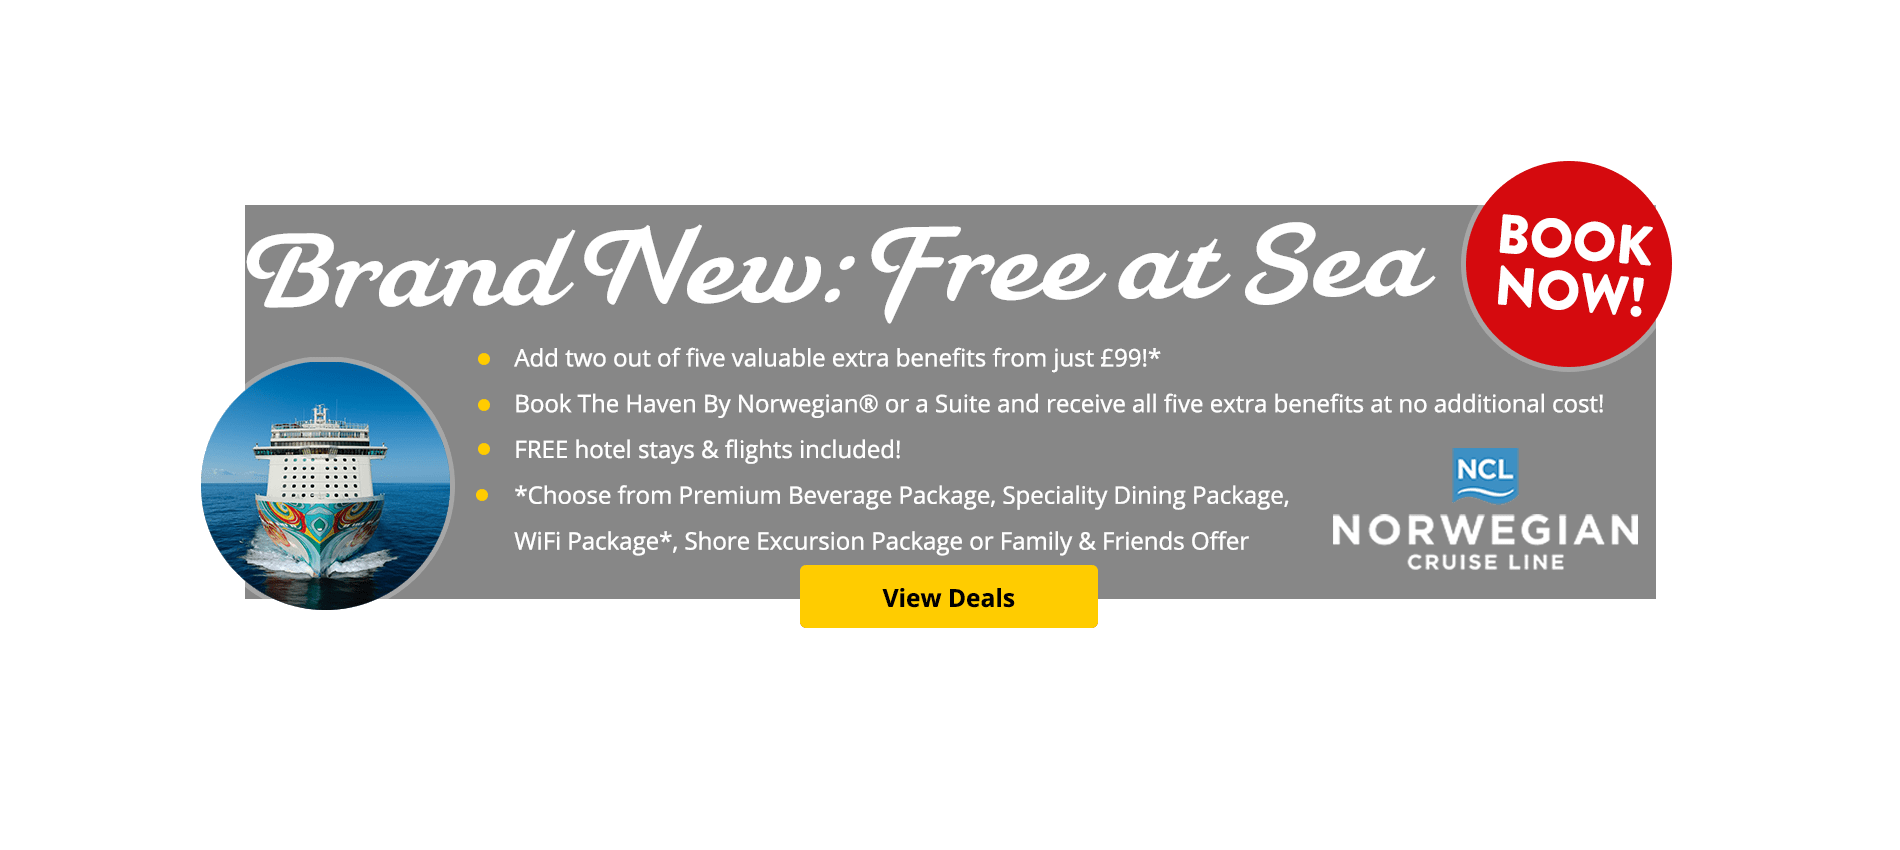 Norwegian Cruise Line have reimagined the concept of freedom, flexibility and choice with the launch of Free At Sea – their superb new premium cruise product. Discover what it really means to Feel Free at Sea…